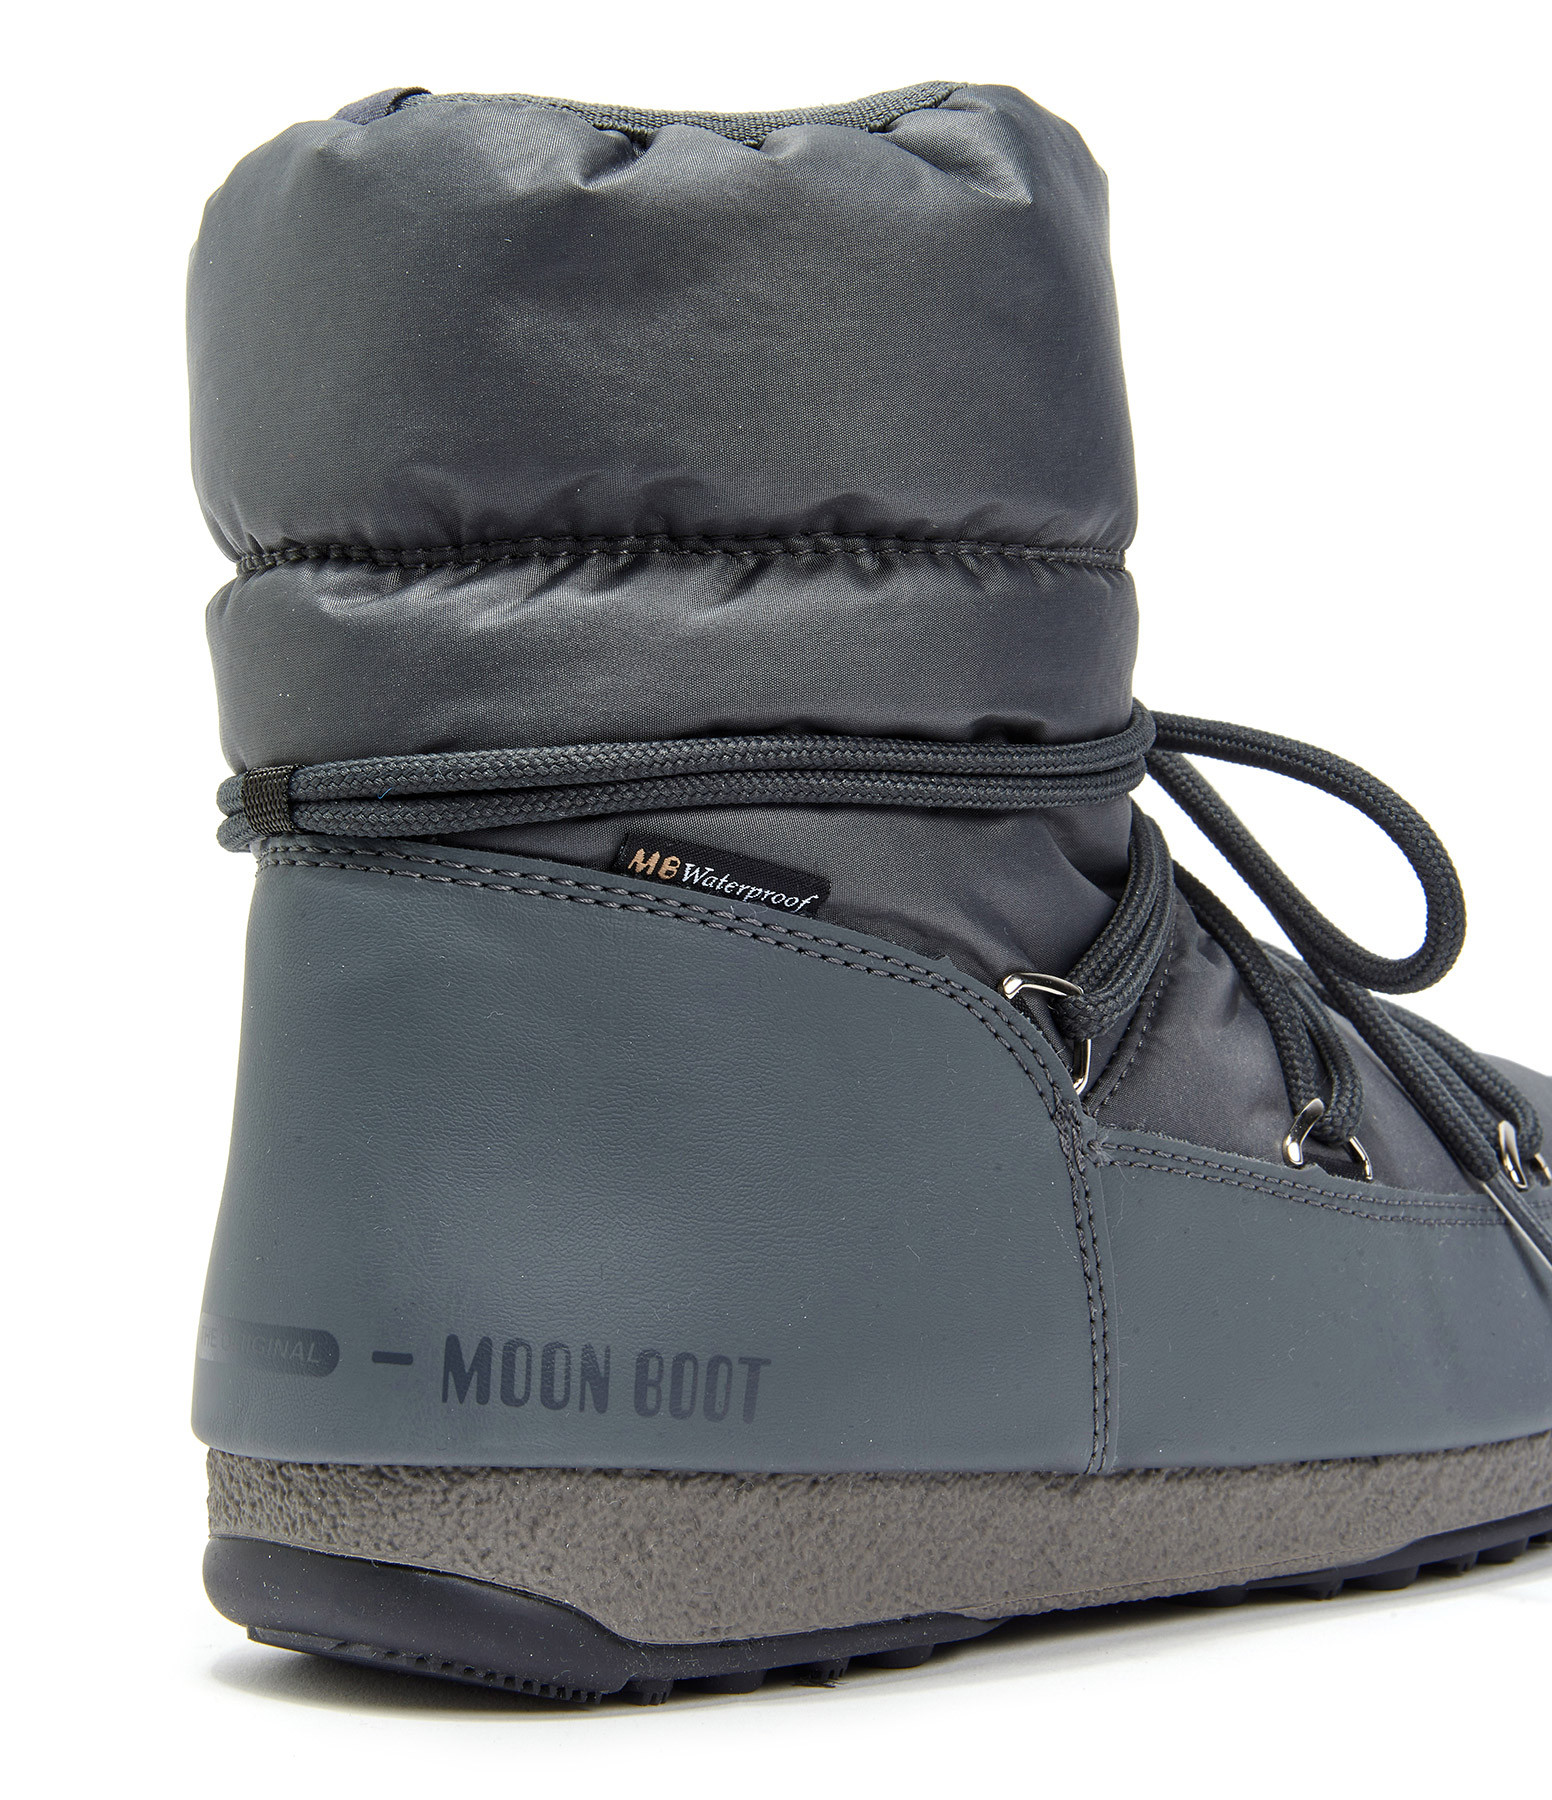 MOON BOOT - Moon Boot Basses Nylon Argenté